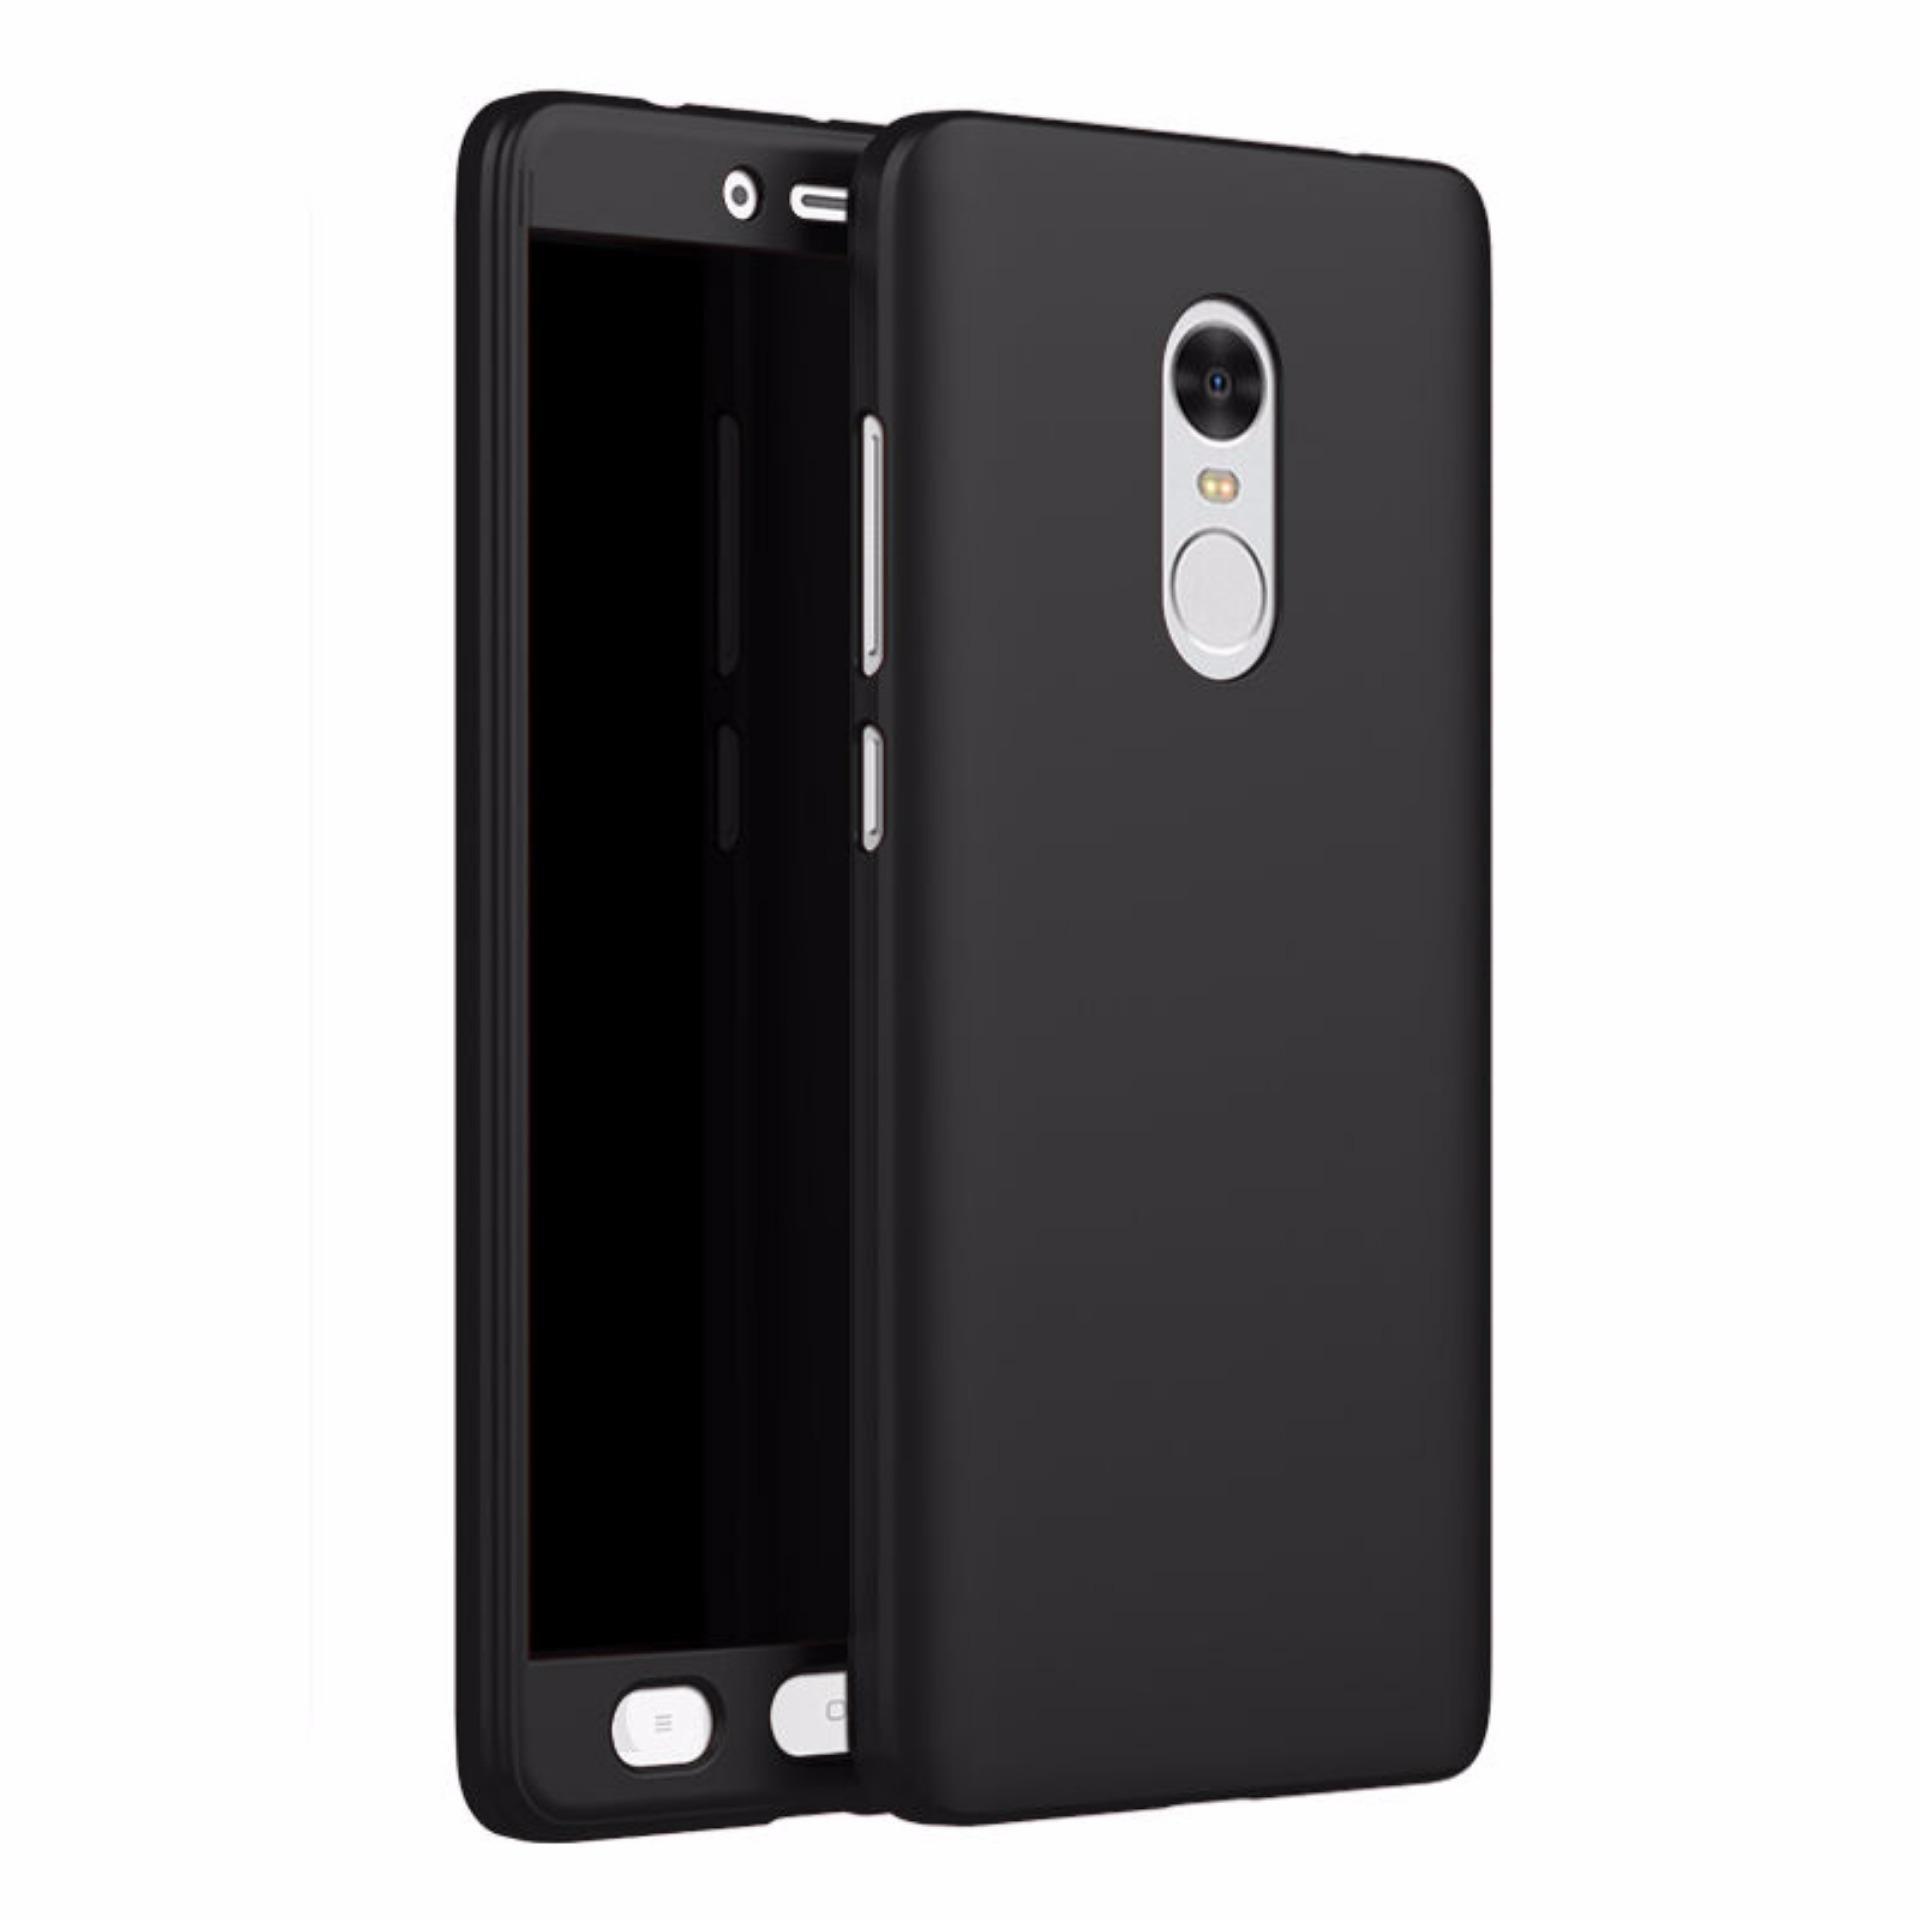 Luxury 360 Degree Full Body Protection Cover Case For Xiaomi RedmiNote 4 5.5